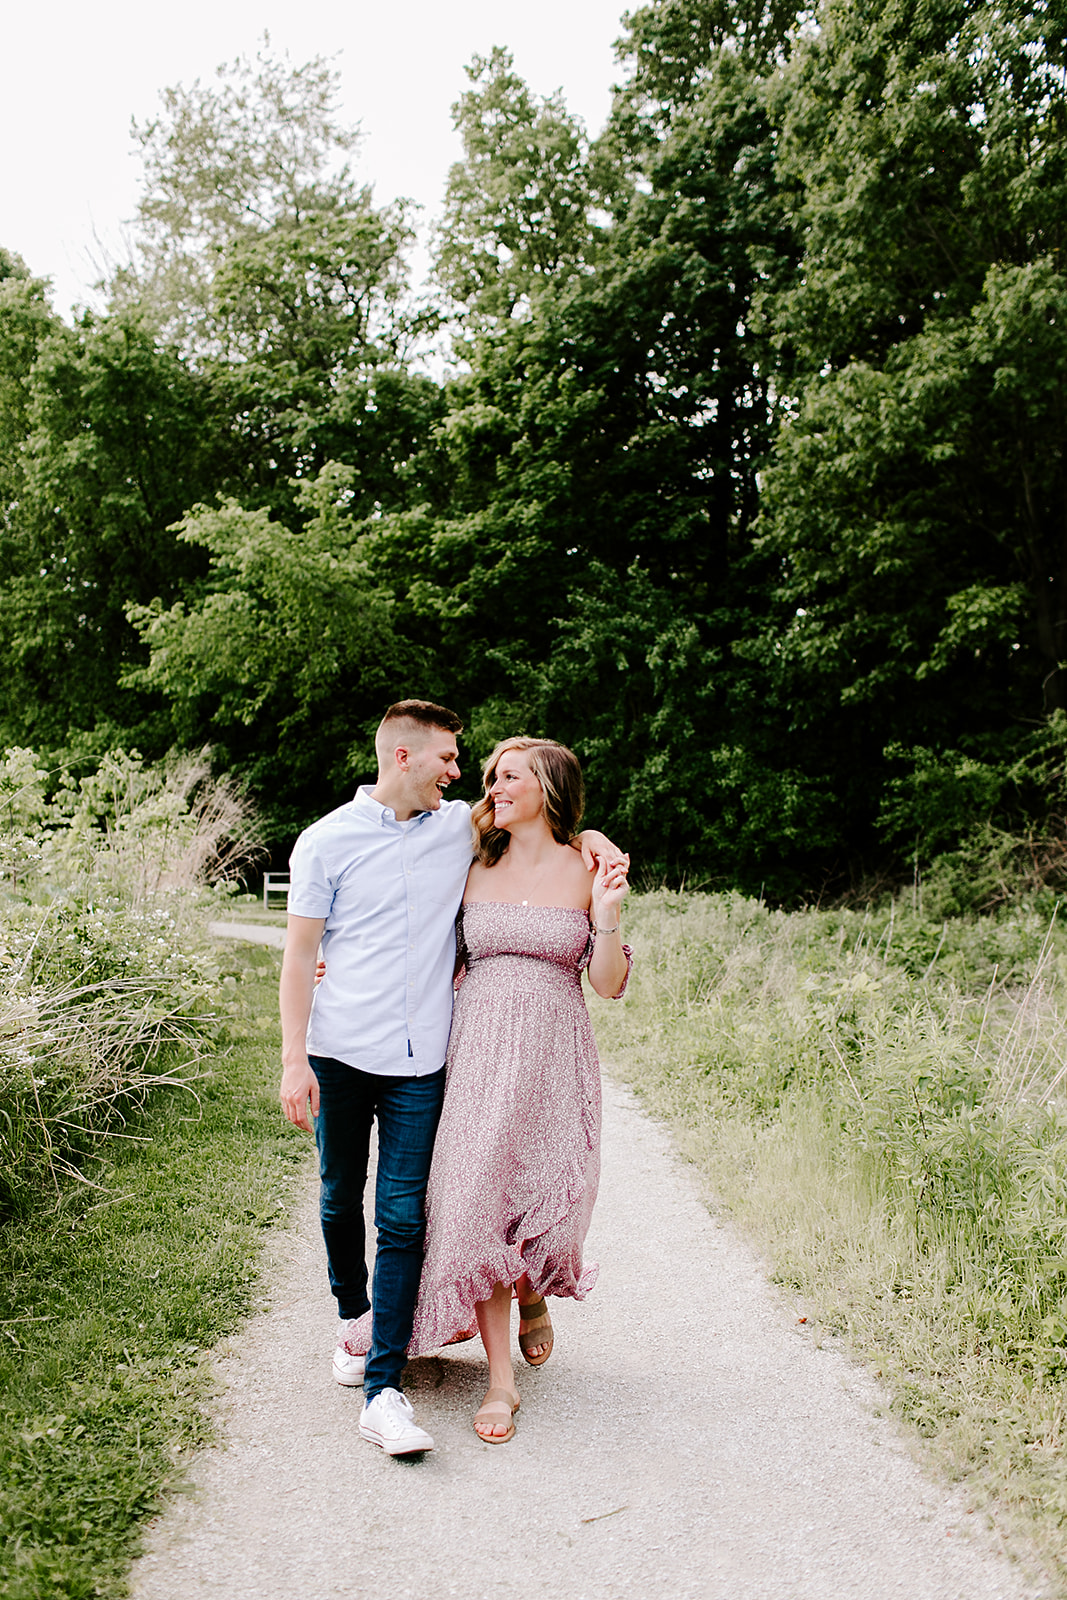 Casie_and_Sean_Maternity_session_at_cool_creek_park_in_Carmel_Indiana_by_Emily_Wehner-145.jpg